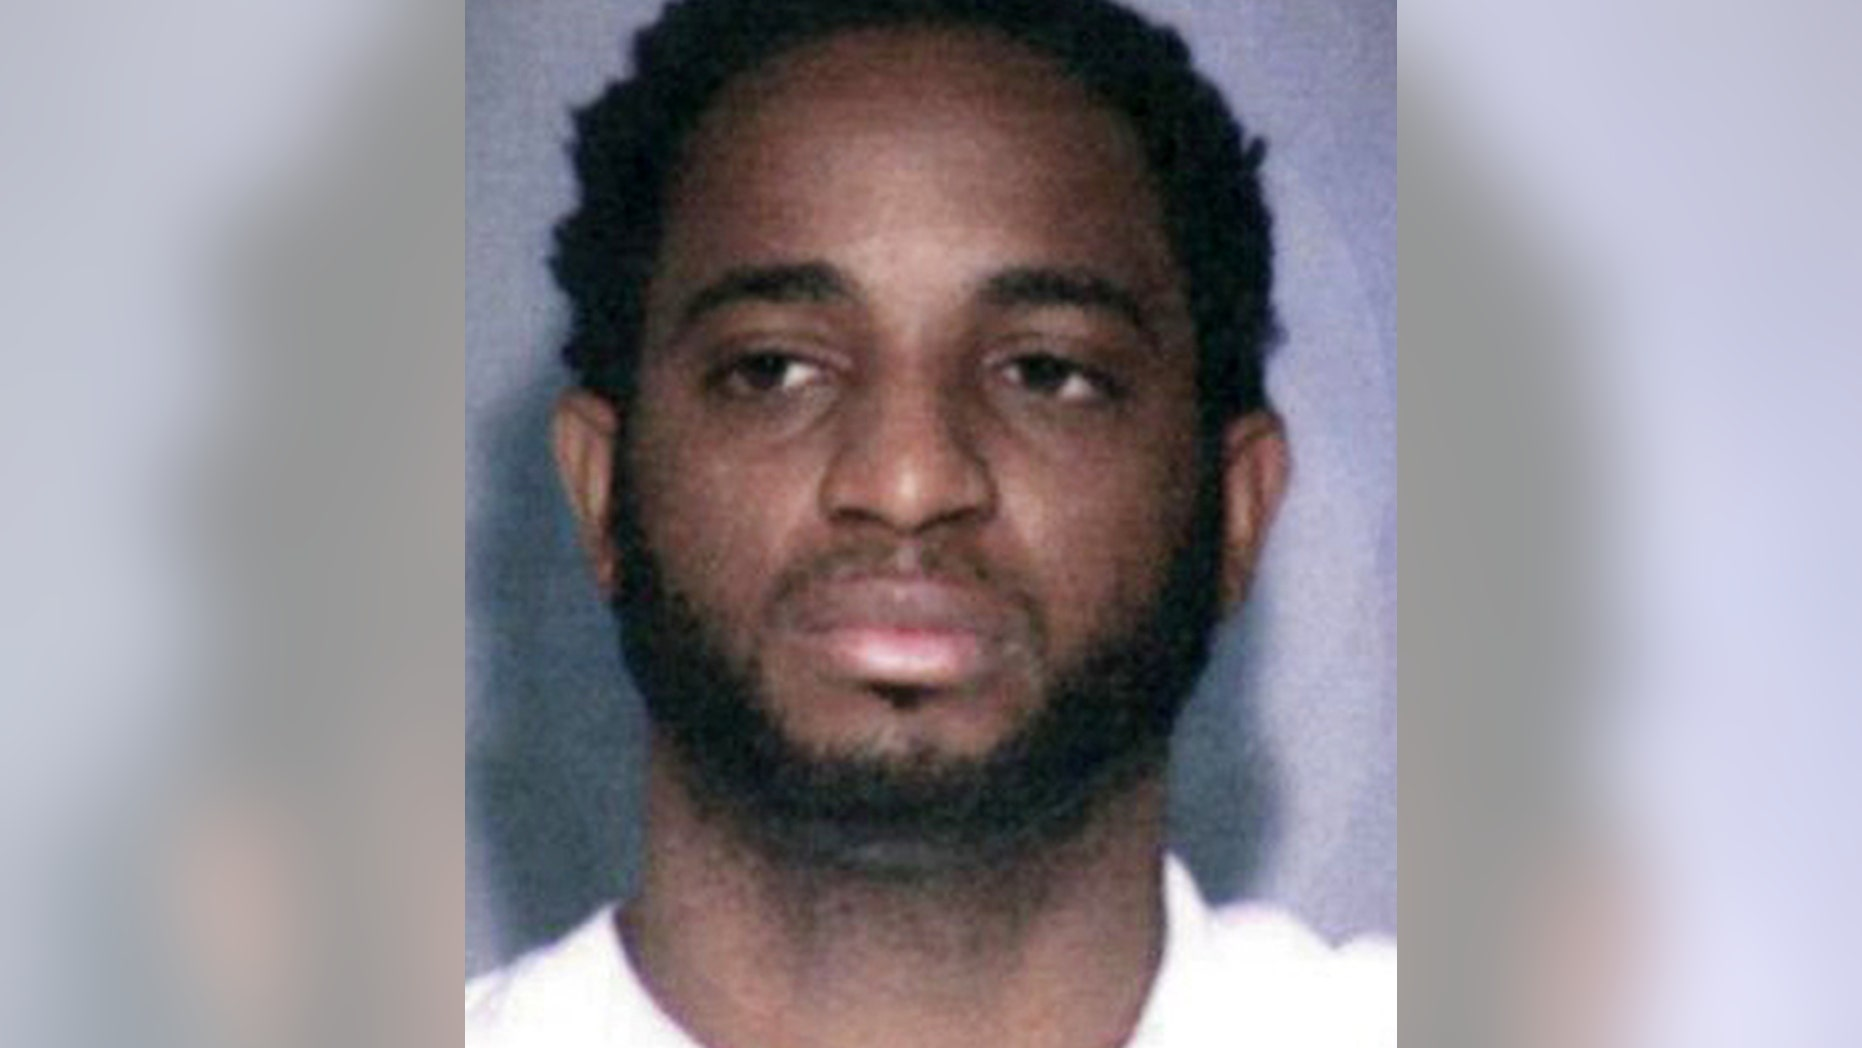 This undated photo provided by the FBI shows fugitive Marlon Jones who is wanted for multiple counts of murder in Los Angeles.